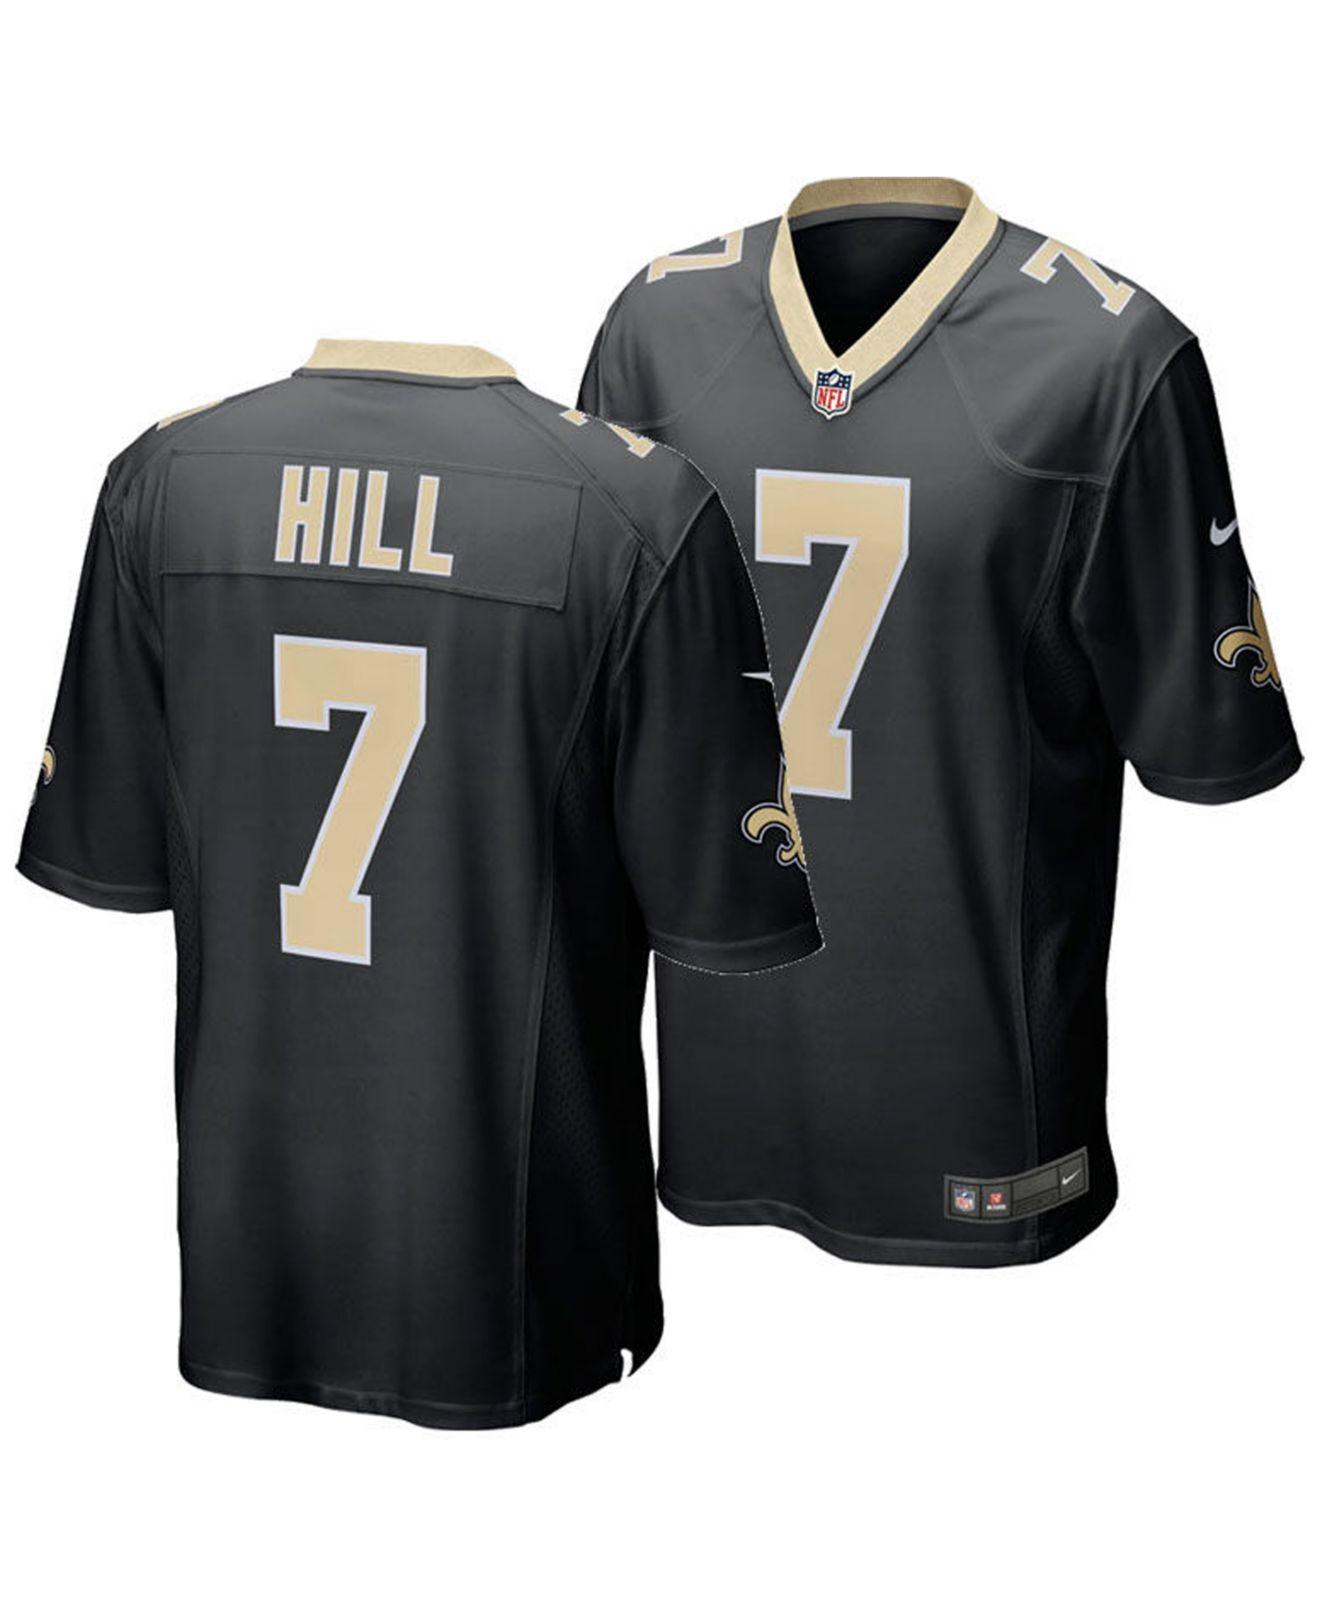 ffb613613ad Lyst - Nike Taysom Hill New Orleans Saints Game Jersey in Black for Men